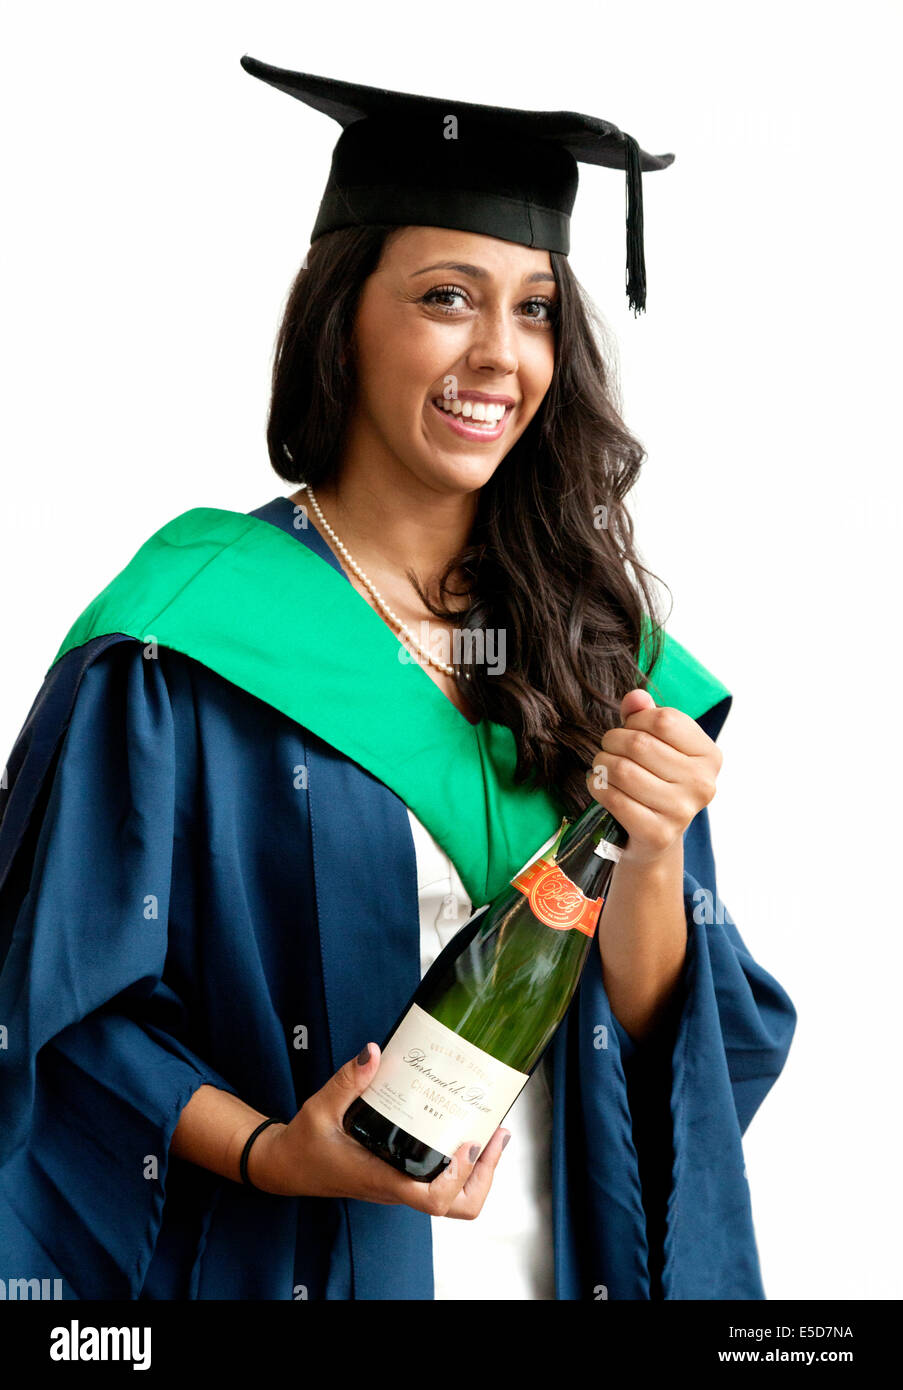 A woman graduate on her graduation day smiling and holding a bottle of champagne, UEA ( University of East Anglia - Stock Image